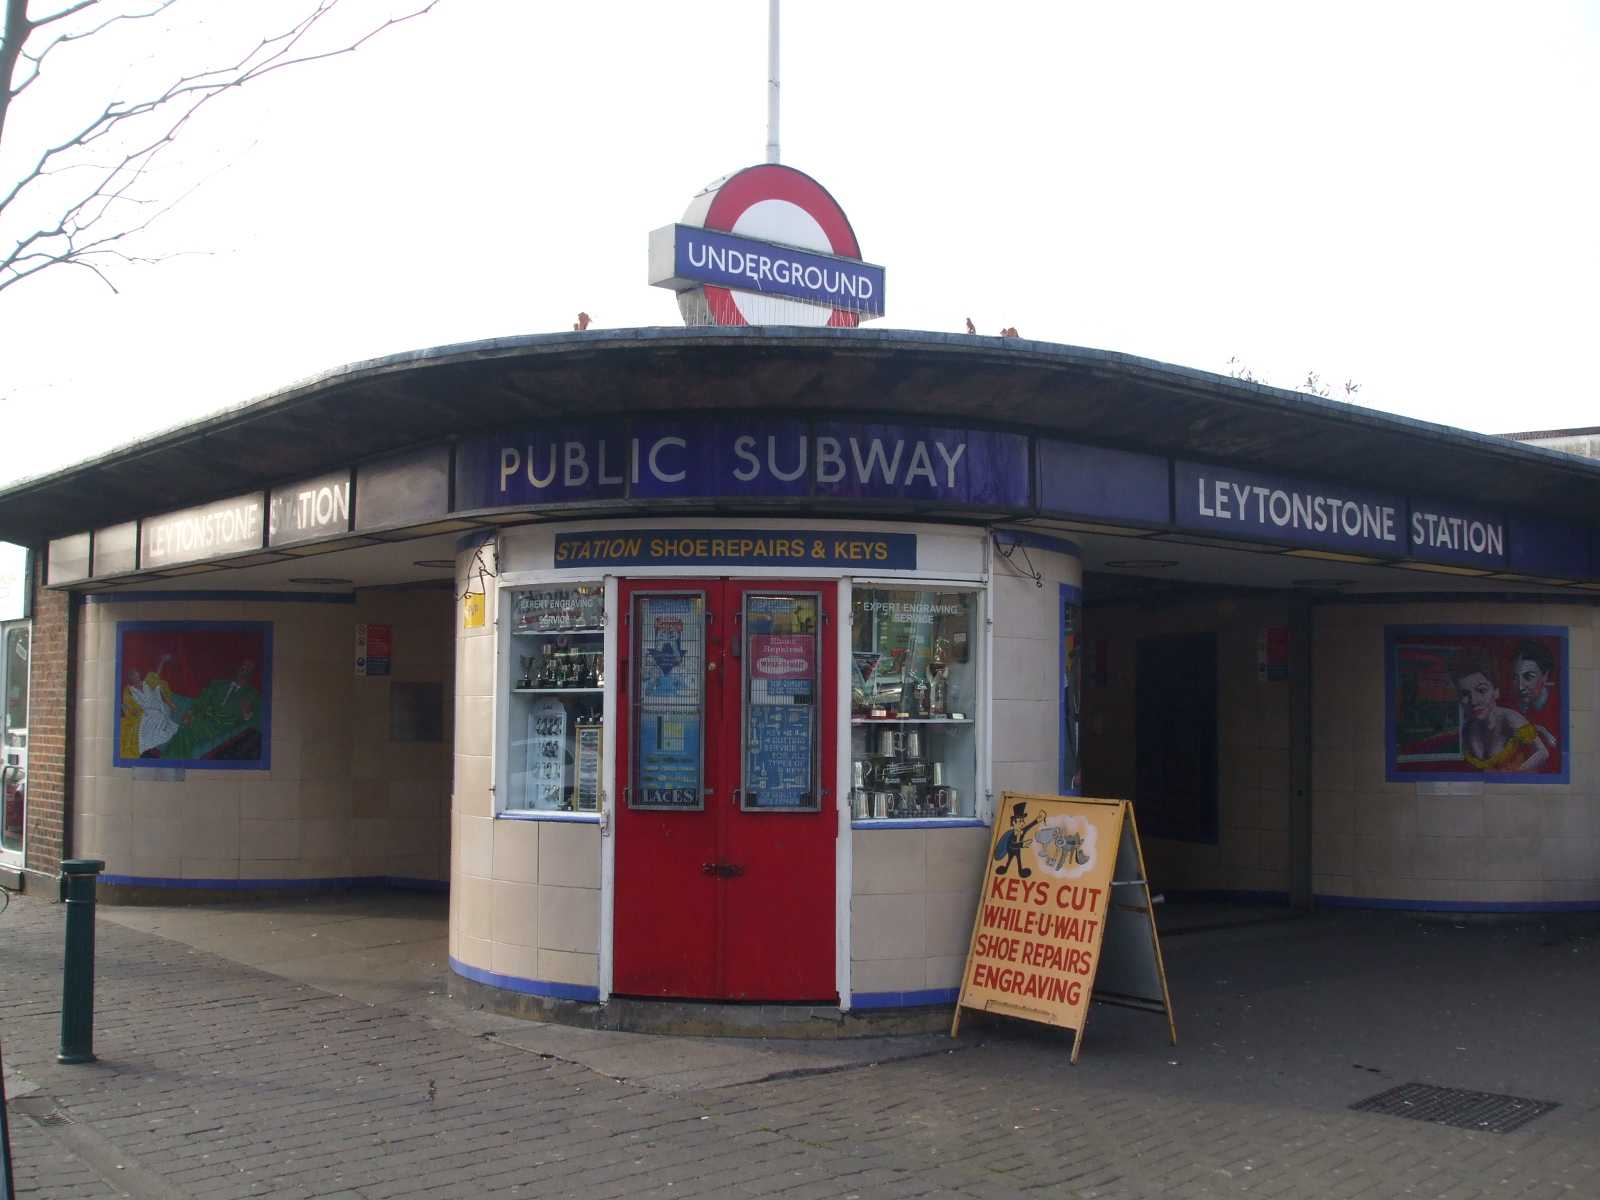 At the Leytonstone Underground Station, a man was accused of murder.